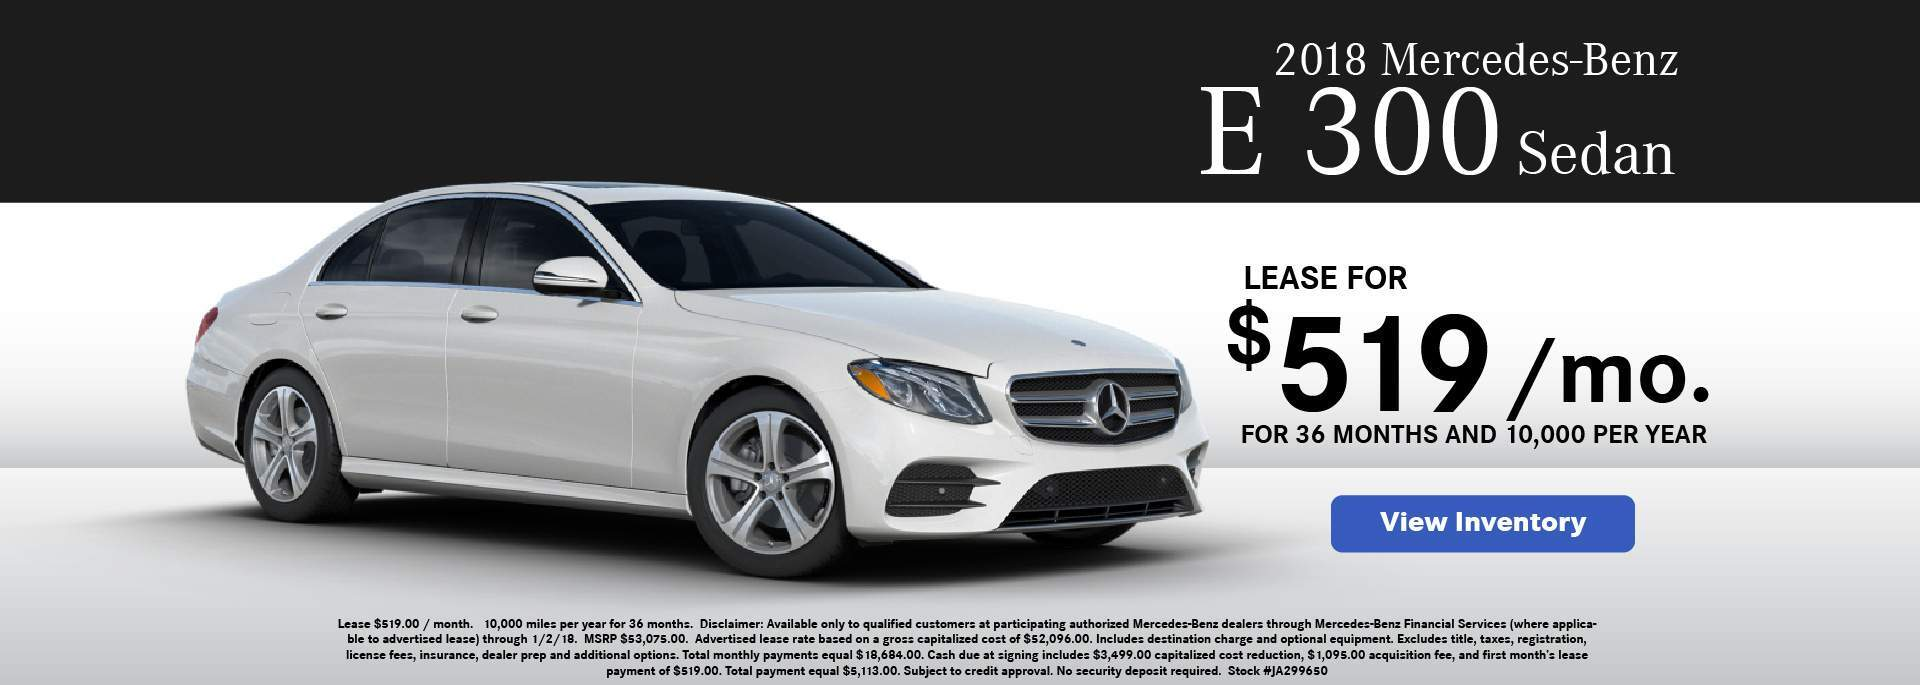 Mercedes benz dealership cutler bay fl used cars for Mercedes benz service b coupons